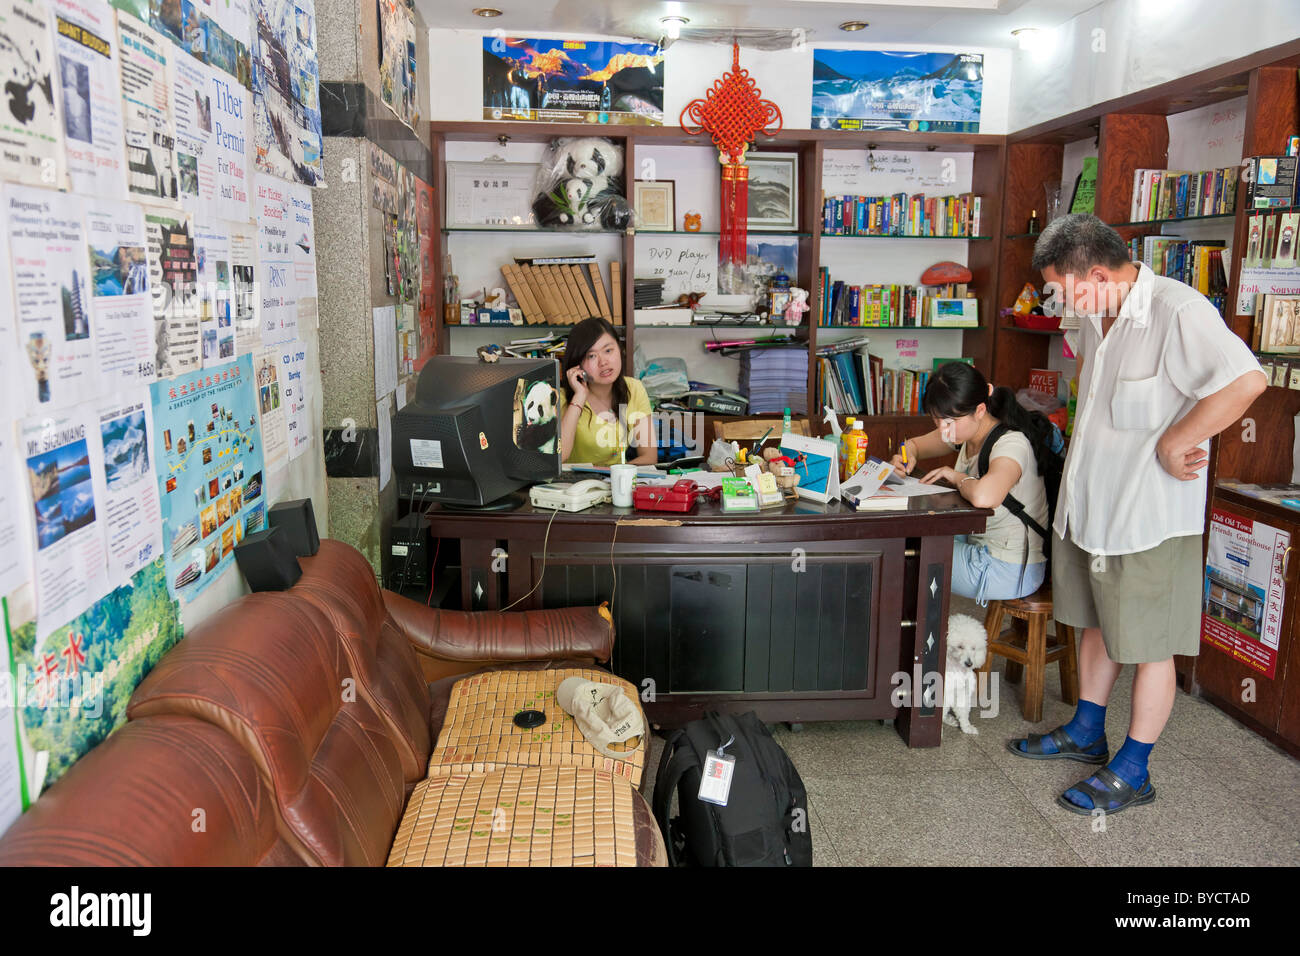 Reception of Sam's Guesthouse historic budget hostel and travel agency in Chengdu, Sichuan Province, China. - Stock Image